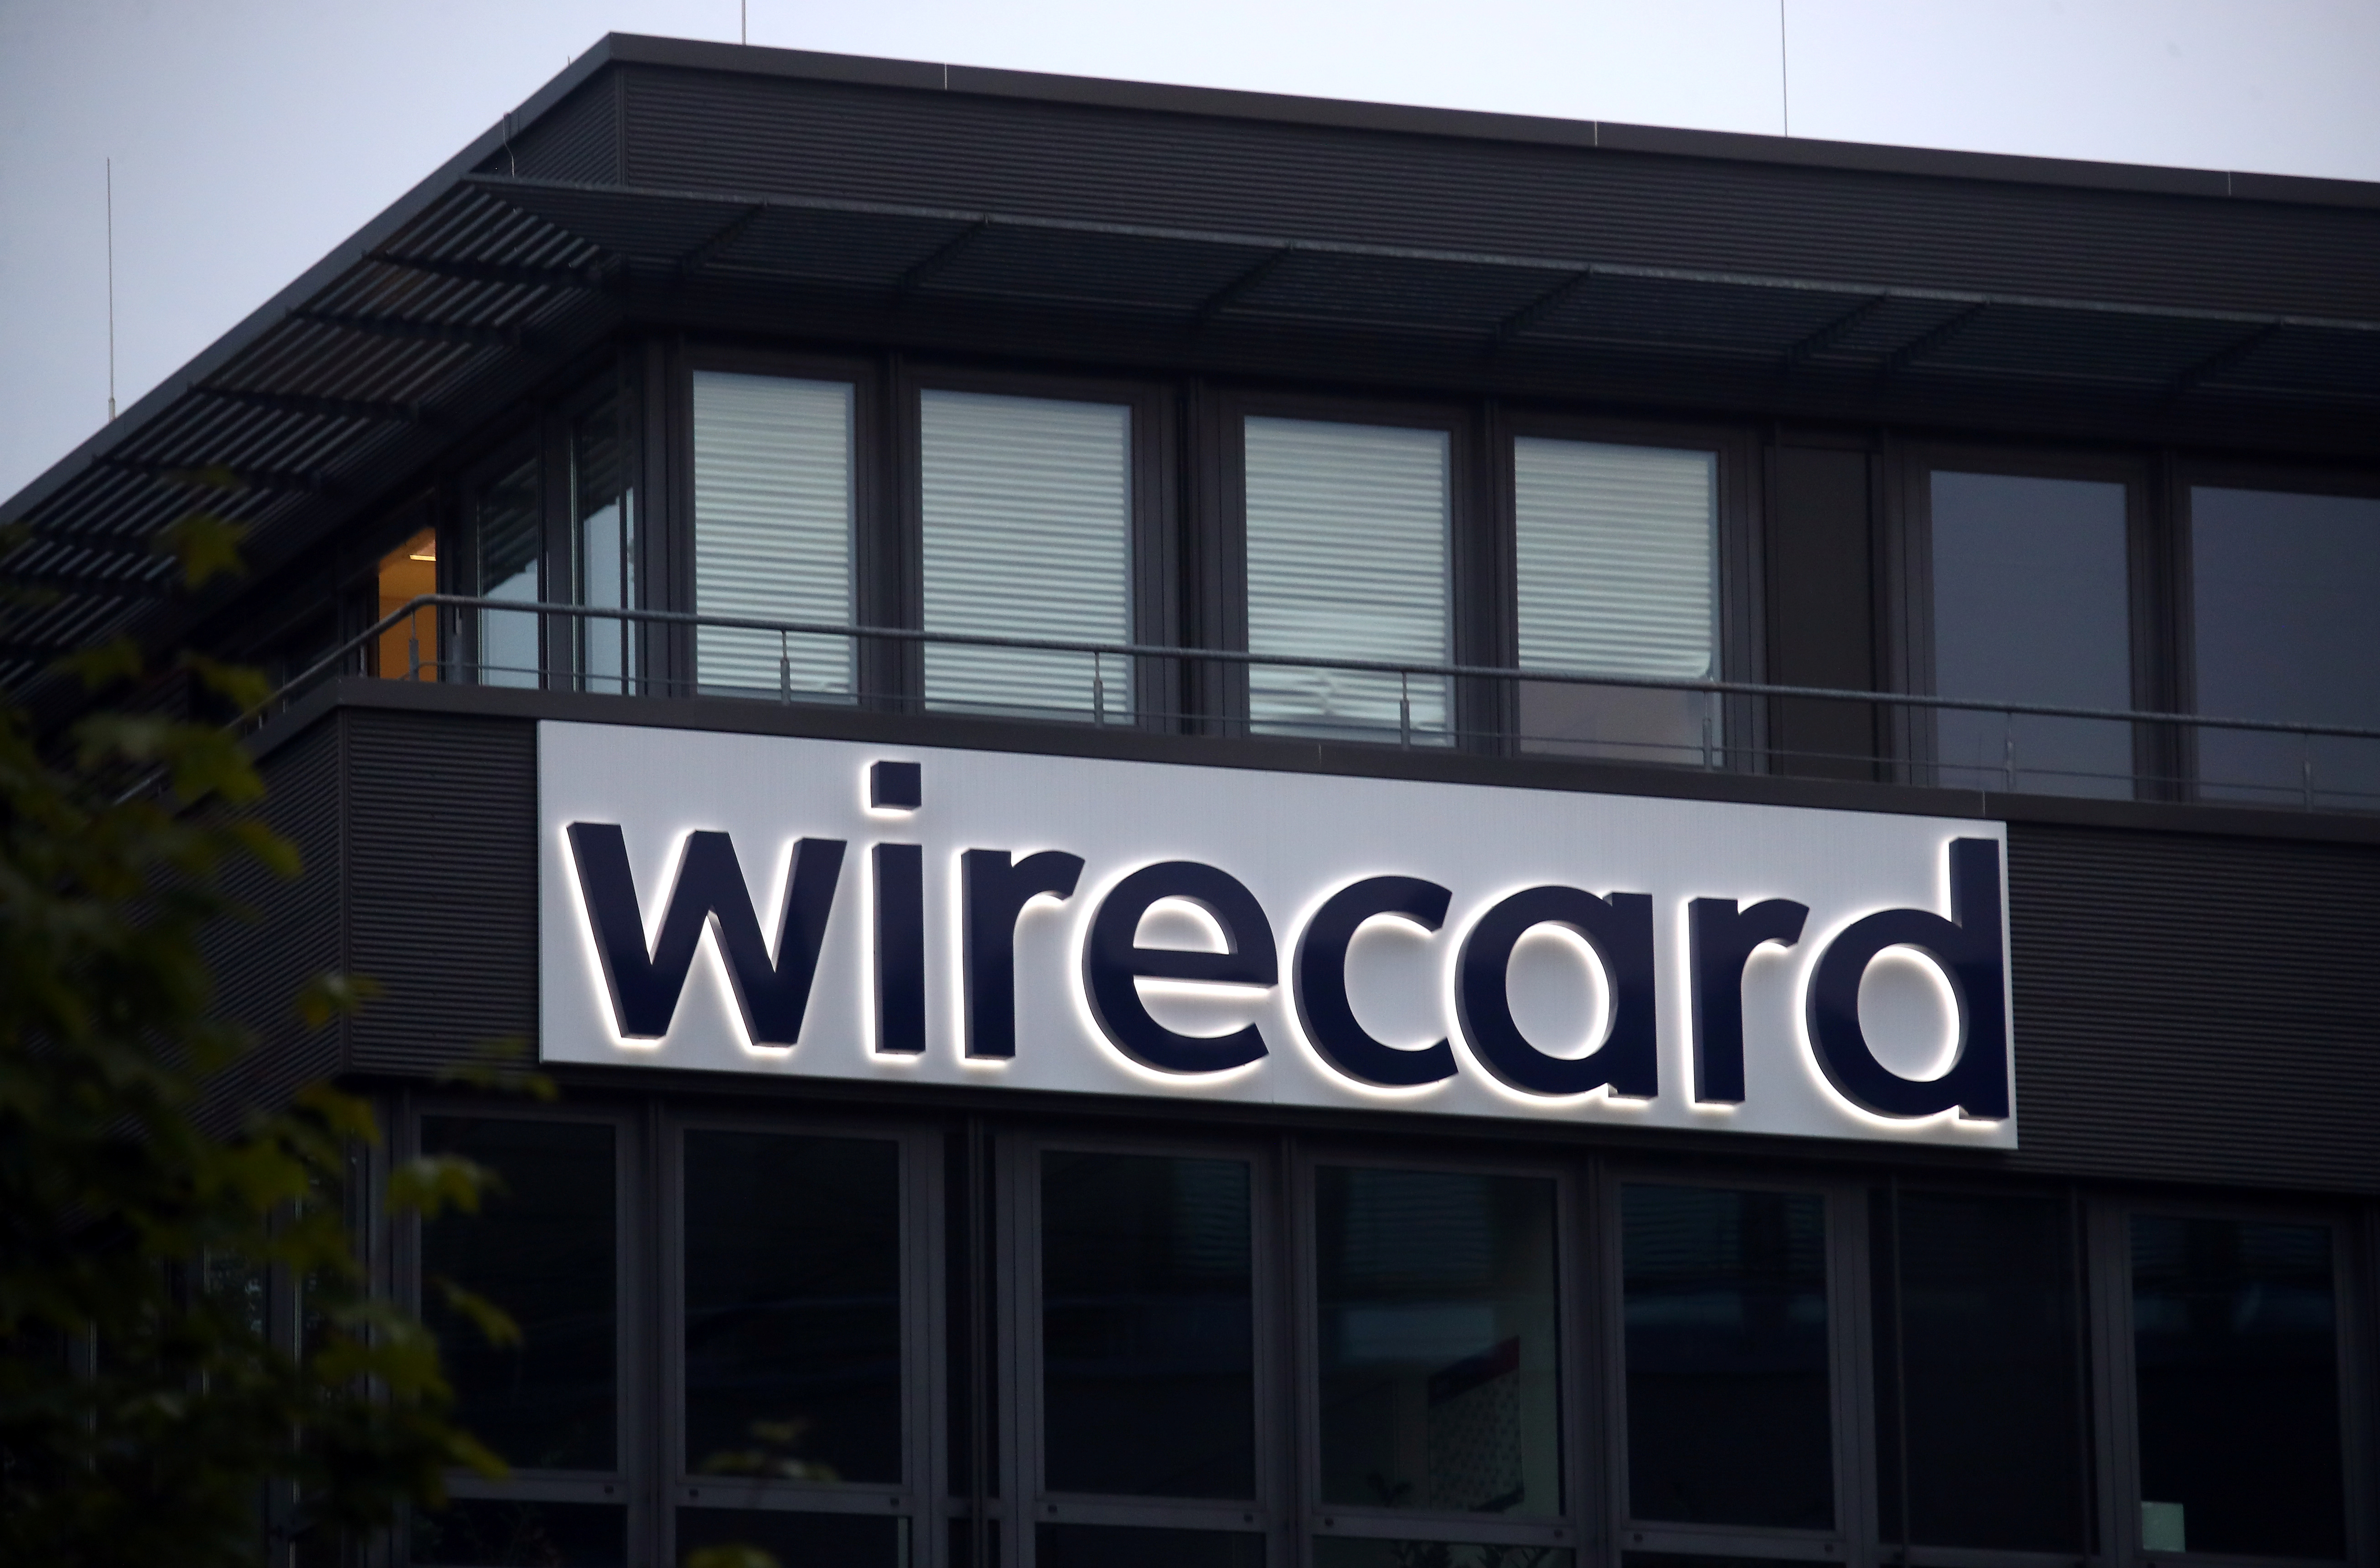 The headquarters of Wirecard AG, an independent provider of outsourcing and white label solutions for electronic payment transactions is seen in Aschheim near Munich, Germany, September 22, 2020. REUTERS/Michael Dalder